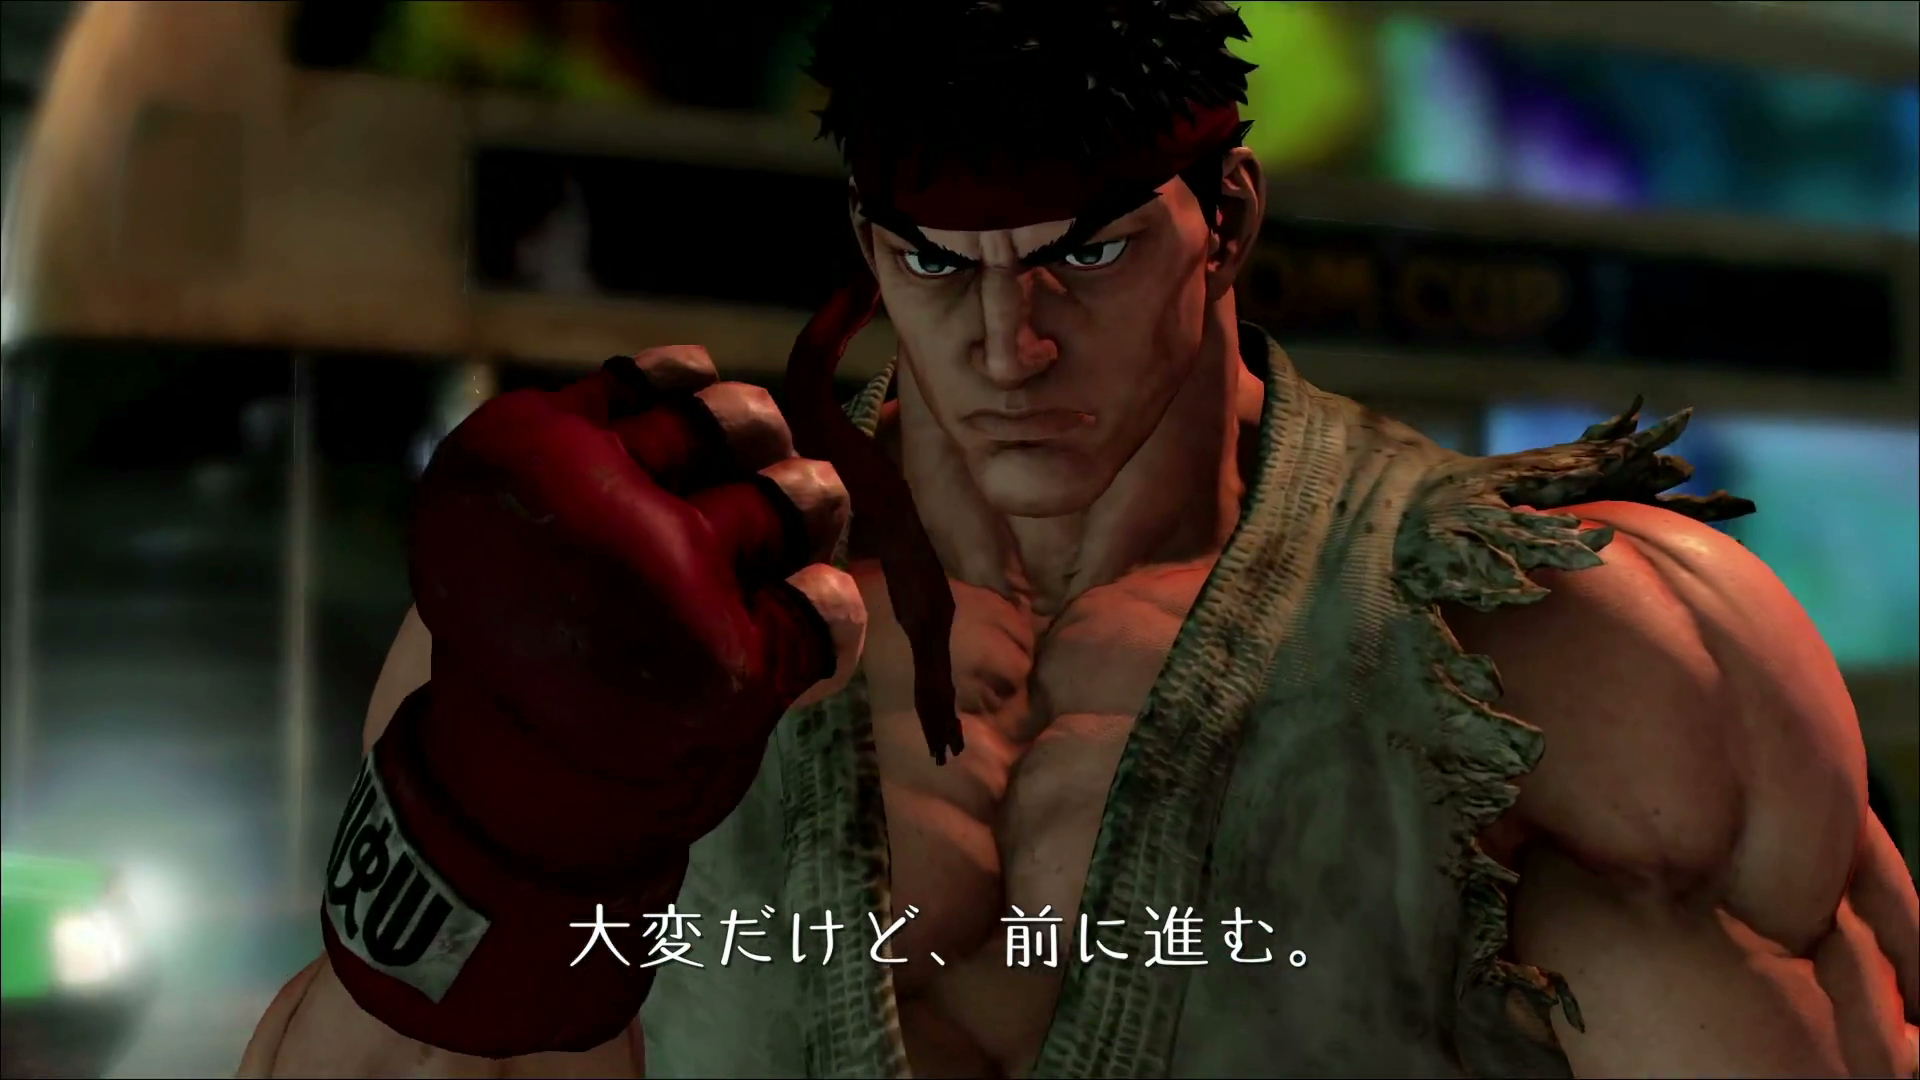 Street Fighter 5 trailer leaks, game exclusive to PS4 and ...